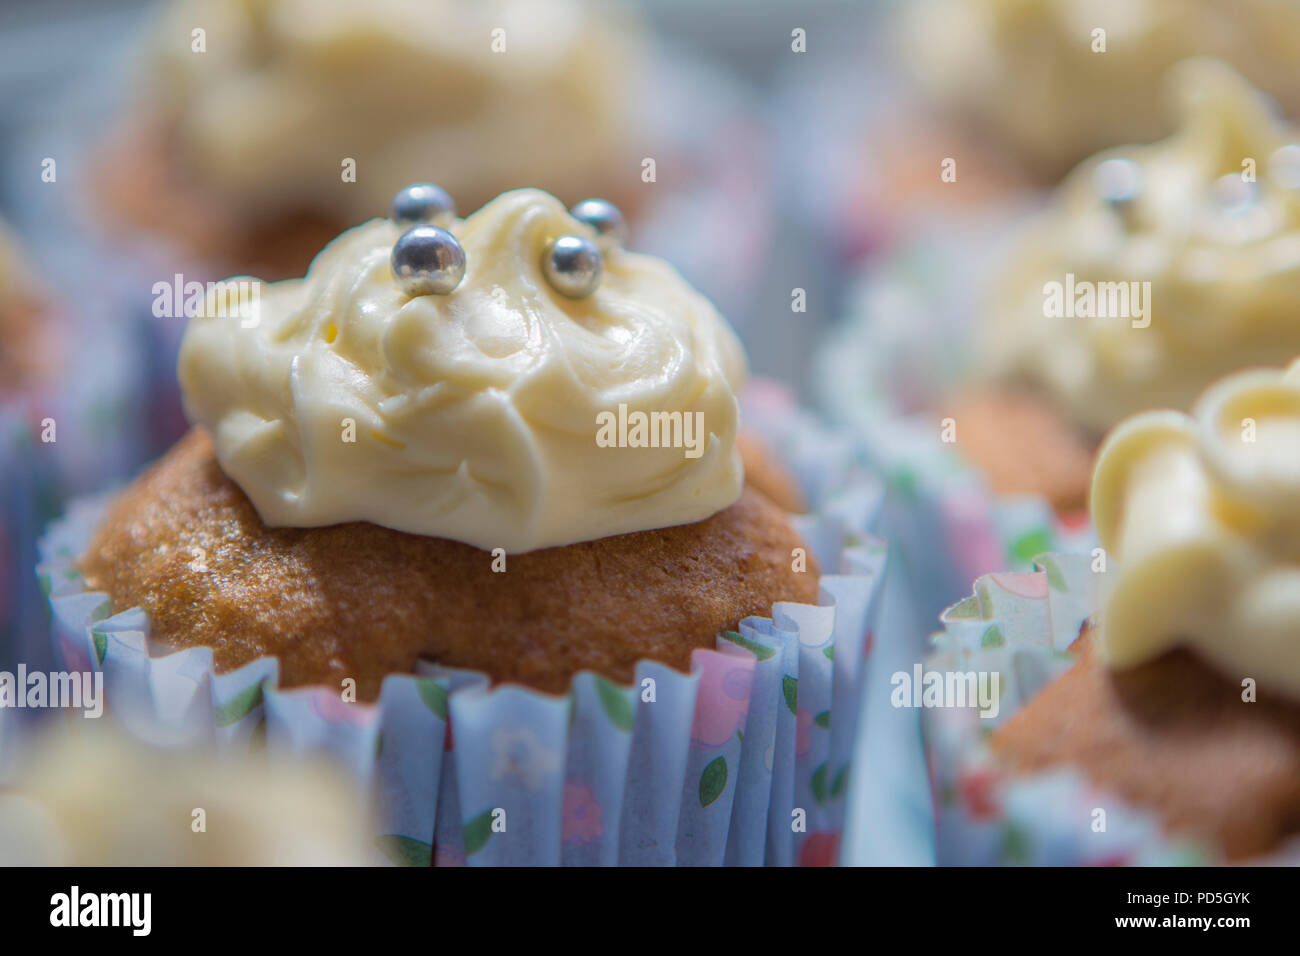 Mums homemade vanilla cupcakes with smooth buttercream icing. - Stock Image